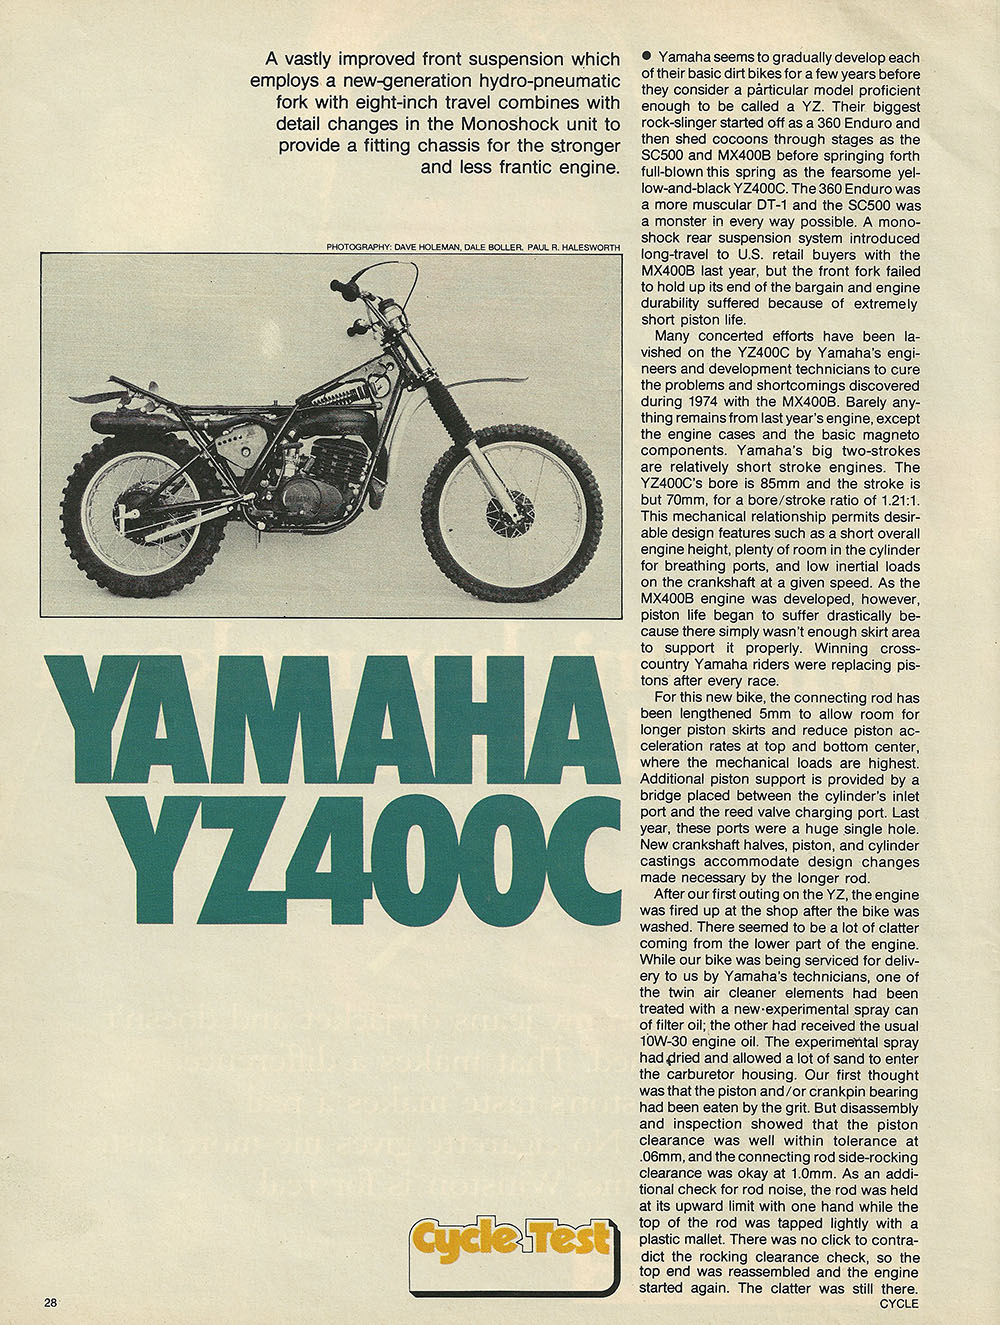 1976 Yamaha YZ400C off road test 1.JPG